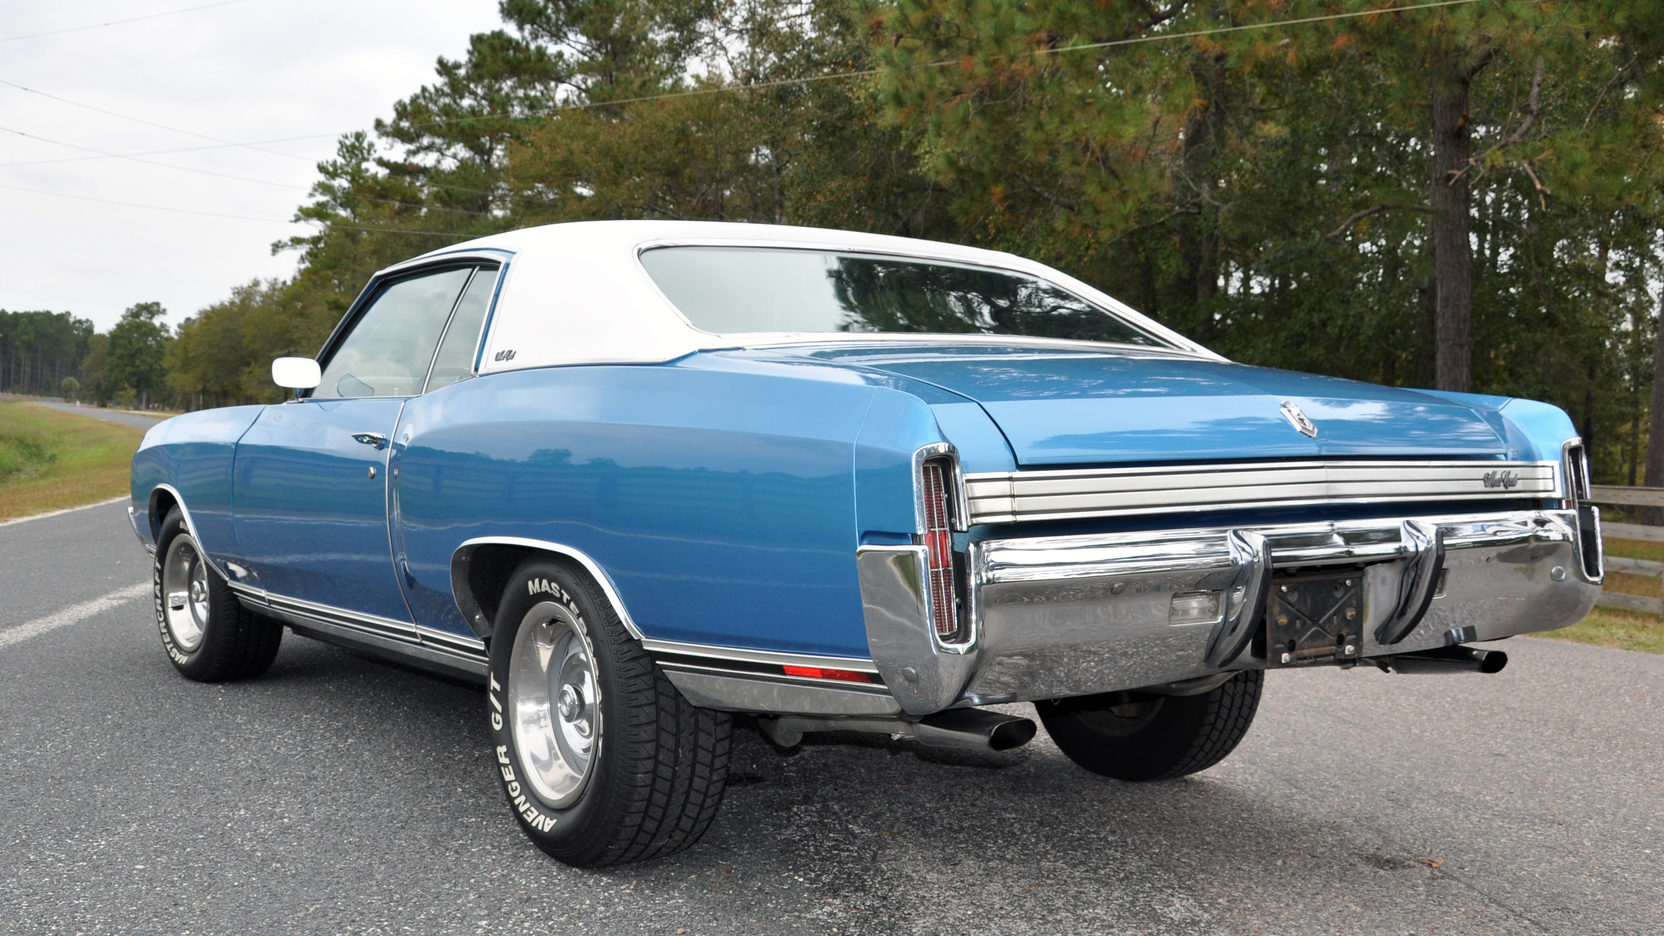 1972 Chevrolet Monte Carlo rear 3/4